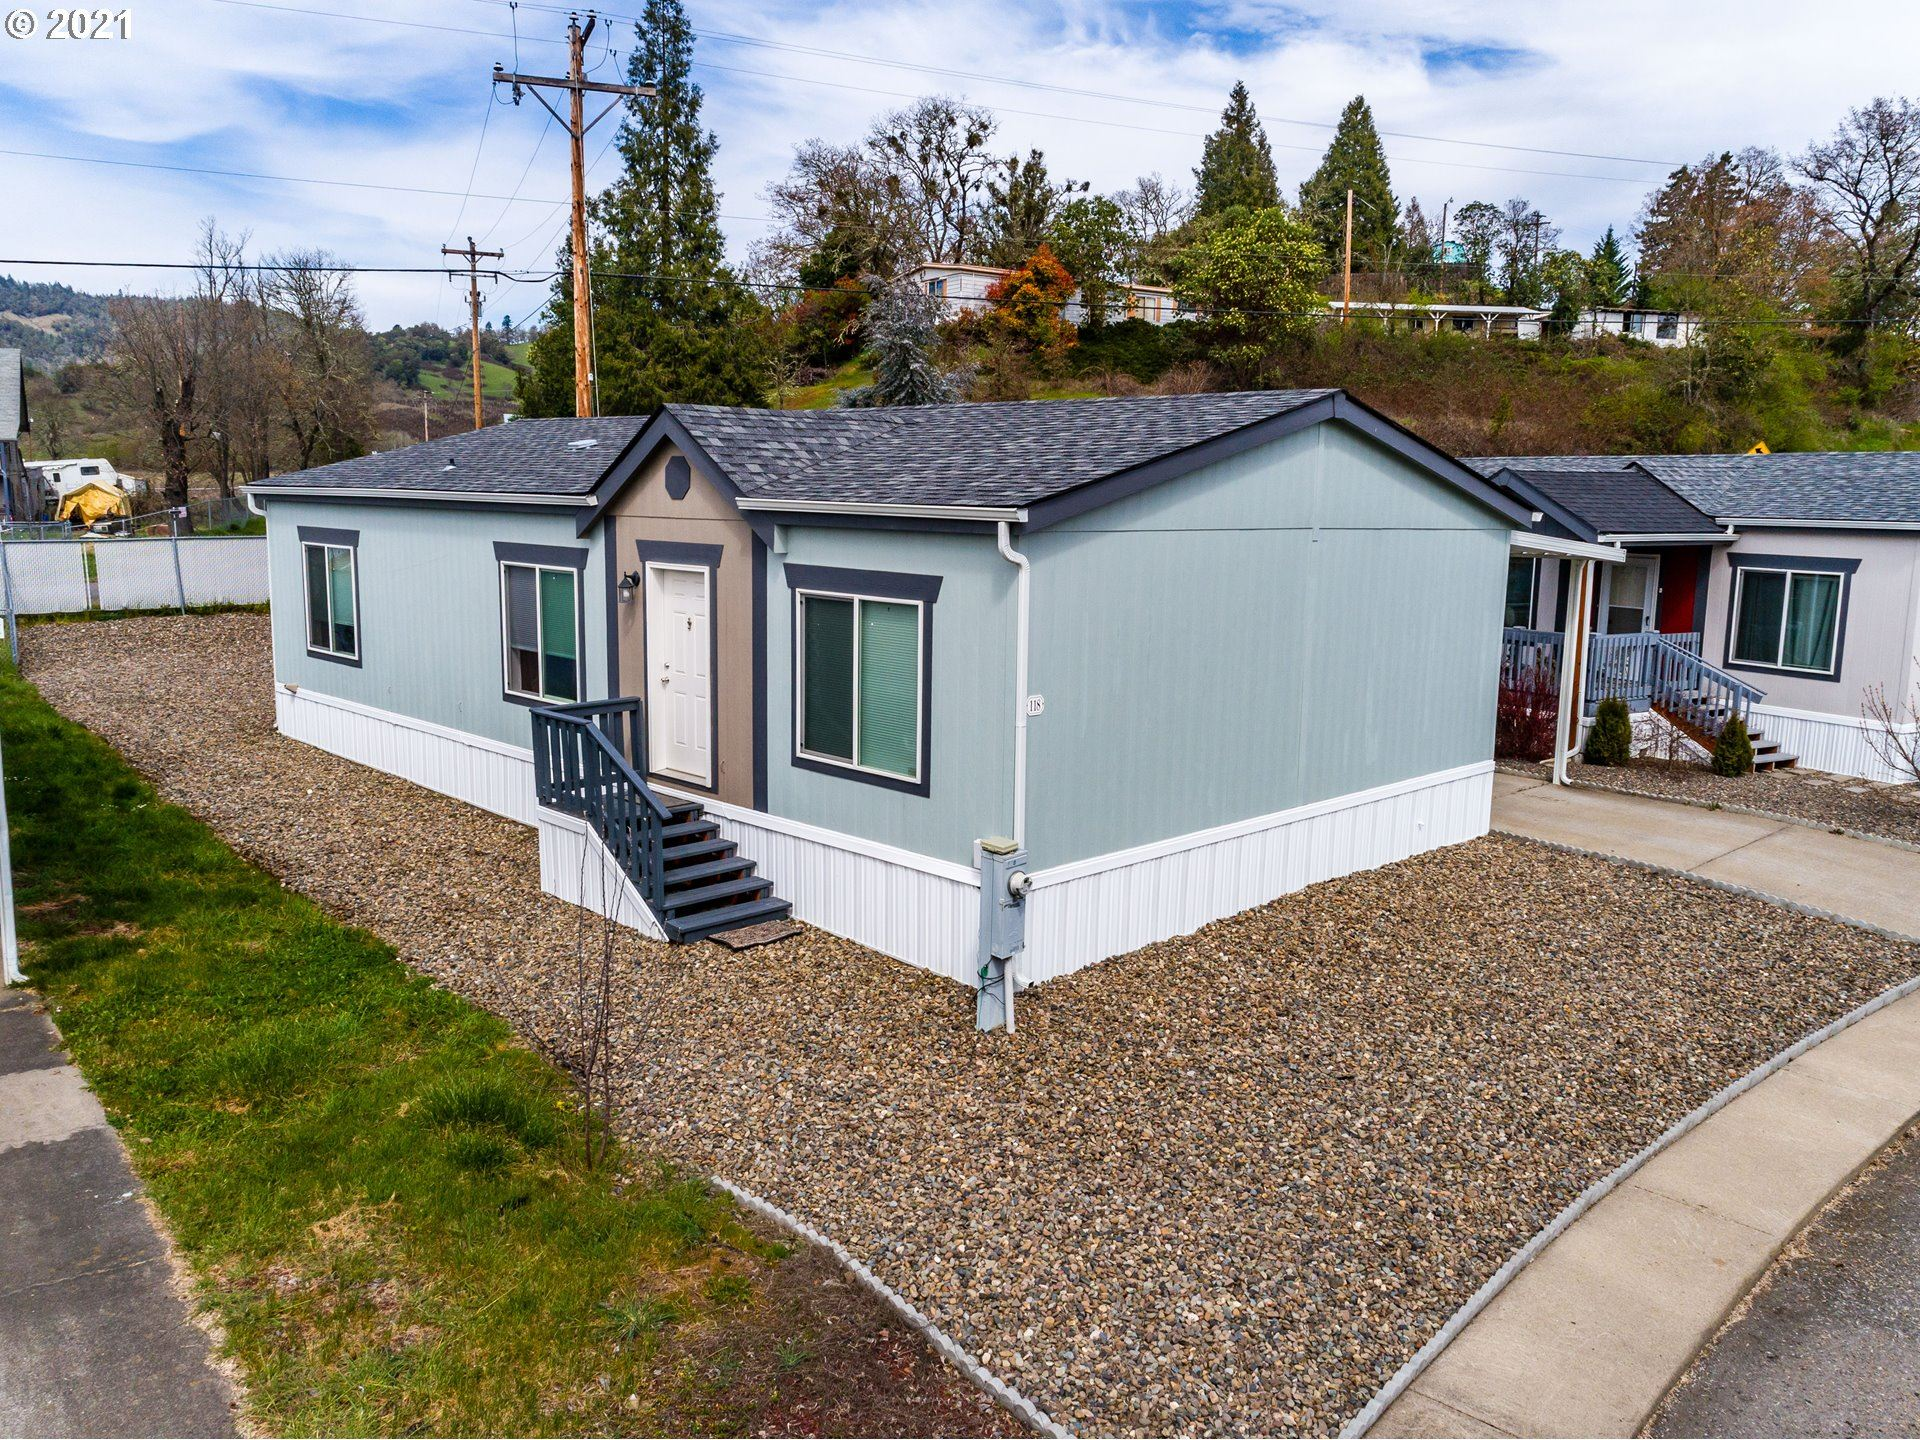 118 NW BREE DR, Winston, OR 97496 - MLS#: 21530671